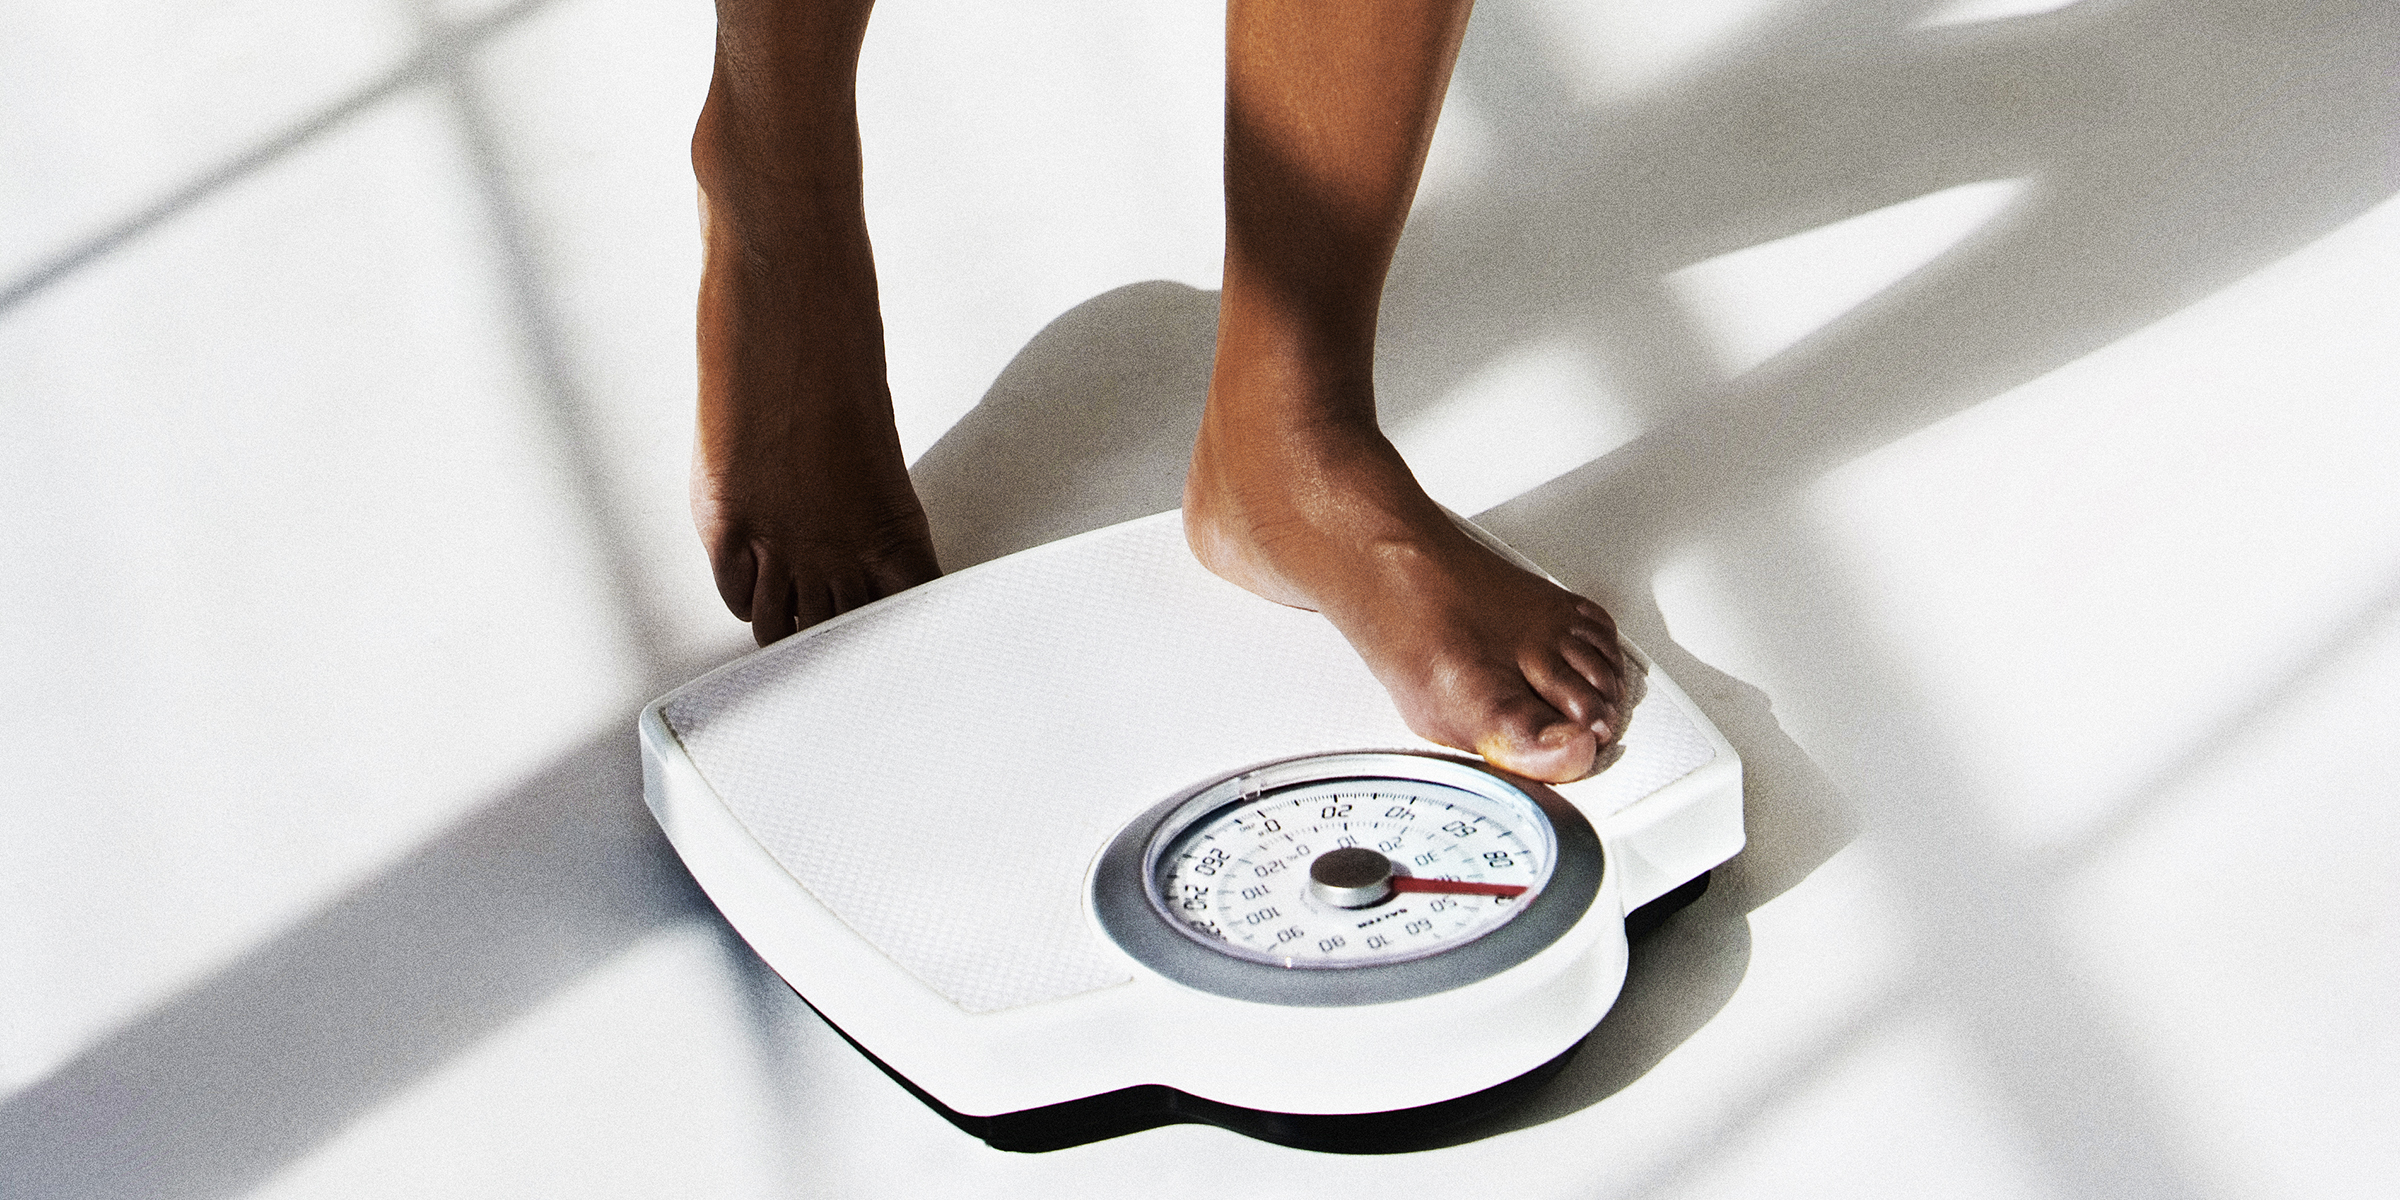 Weight loss – do's and don'ts